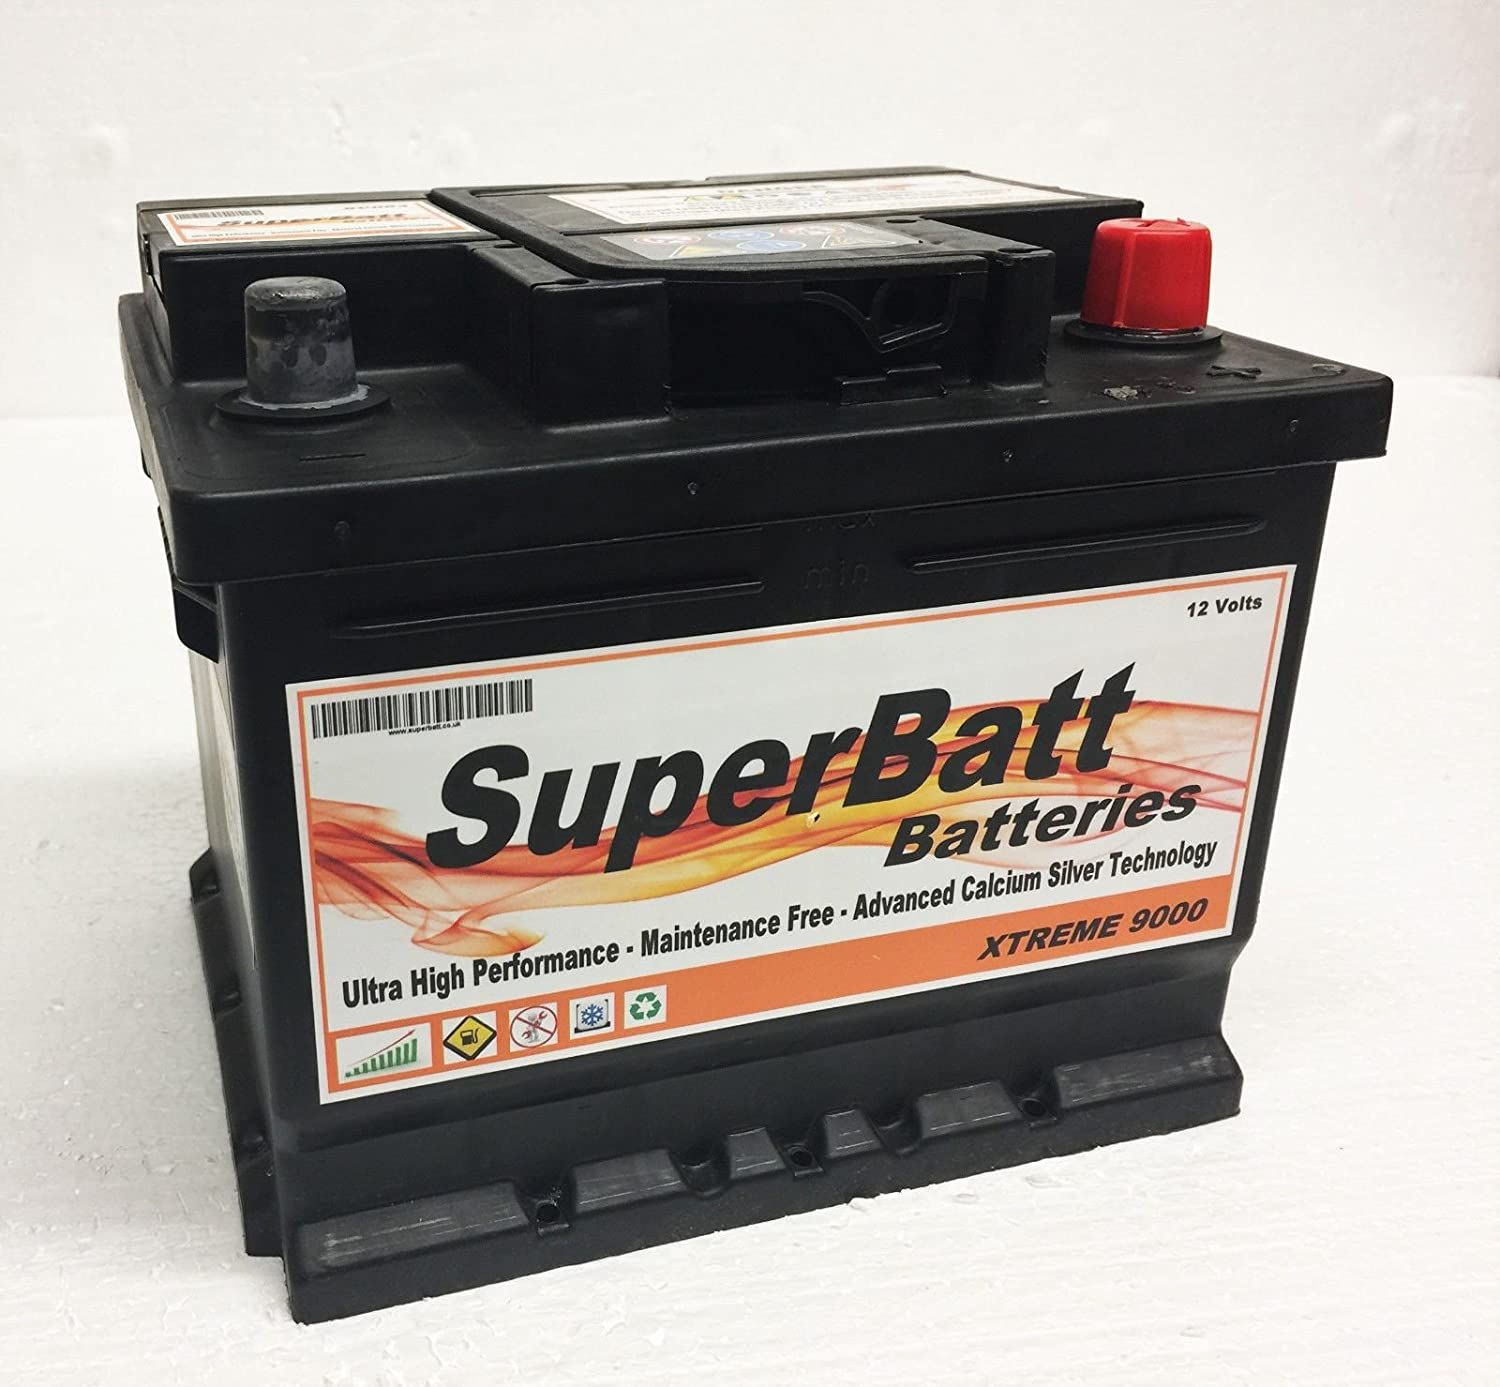 SuperBatt XC063 - 12V 45AH 450A - Heavy Duty Calcium Silver Car Battery (TYPE 063)